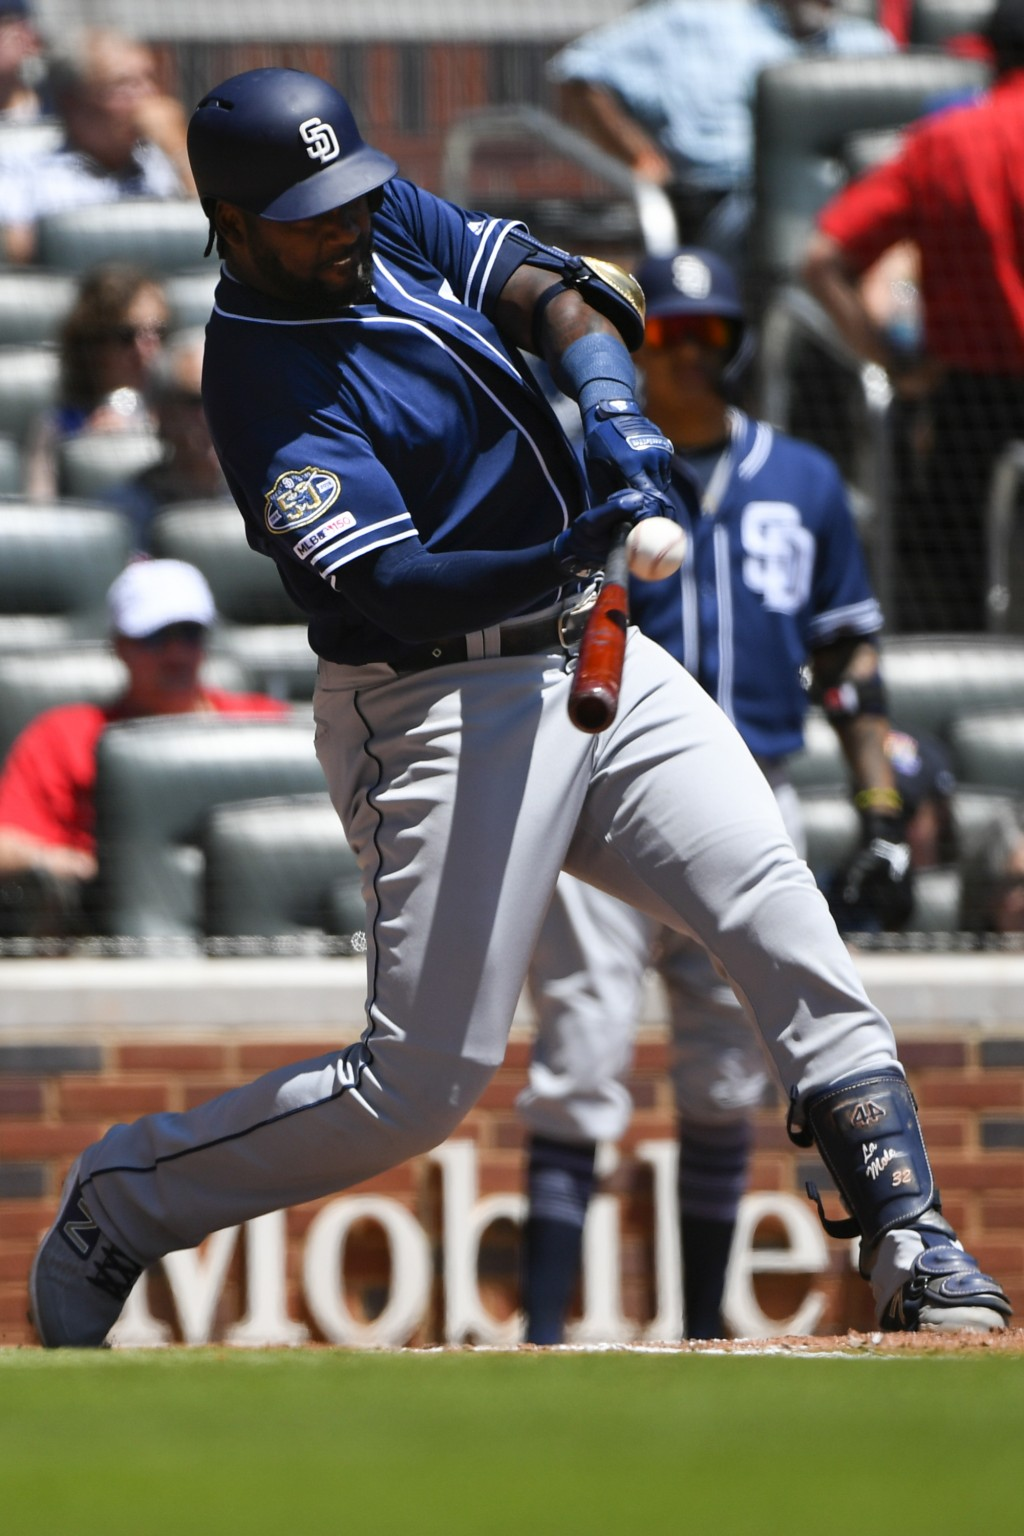 San Diego Padres' Franmil Reyes connects for fly ball to center field to single against the Atlanta Braves during the fifth inning of a baseball game ...